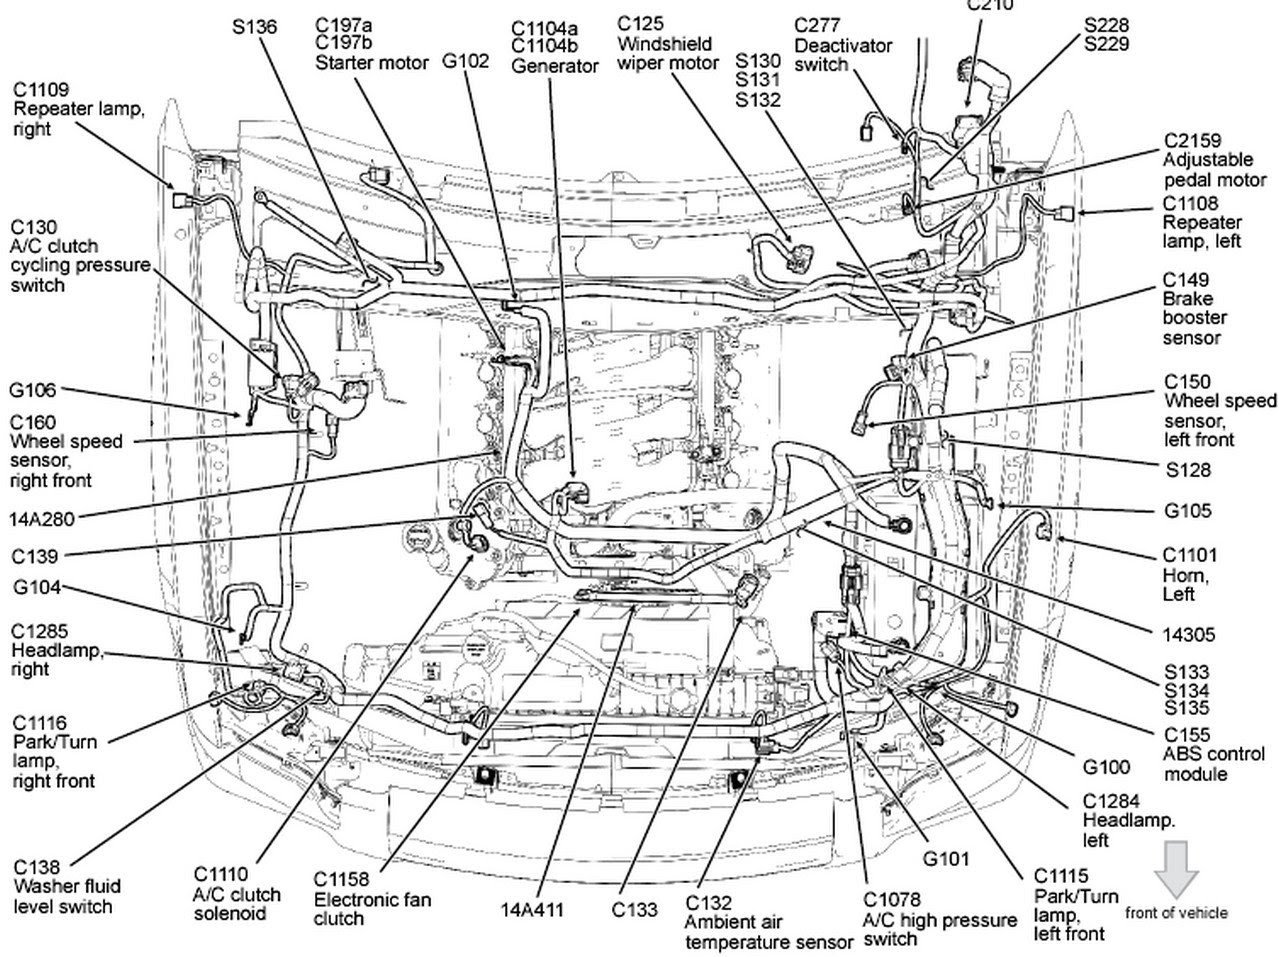 2006 ford explorer engine diagram best wiring library 2003 Ford Explorer Suspension Diagram 2006 ford explorer 6 cyl sohc problem with front wiper motor